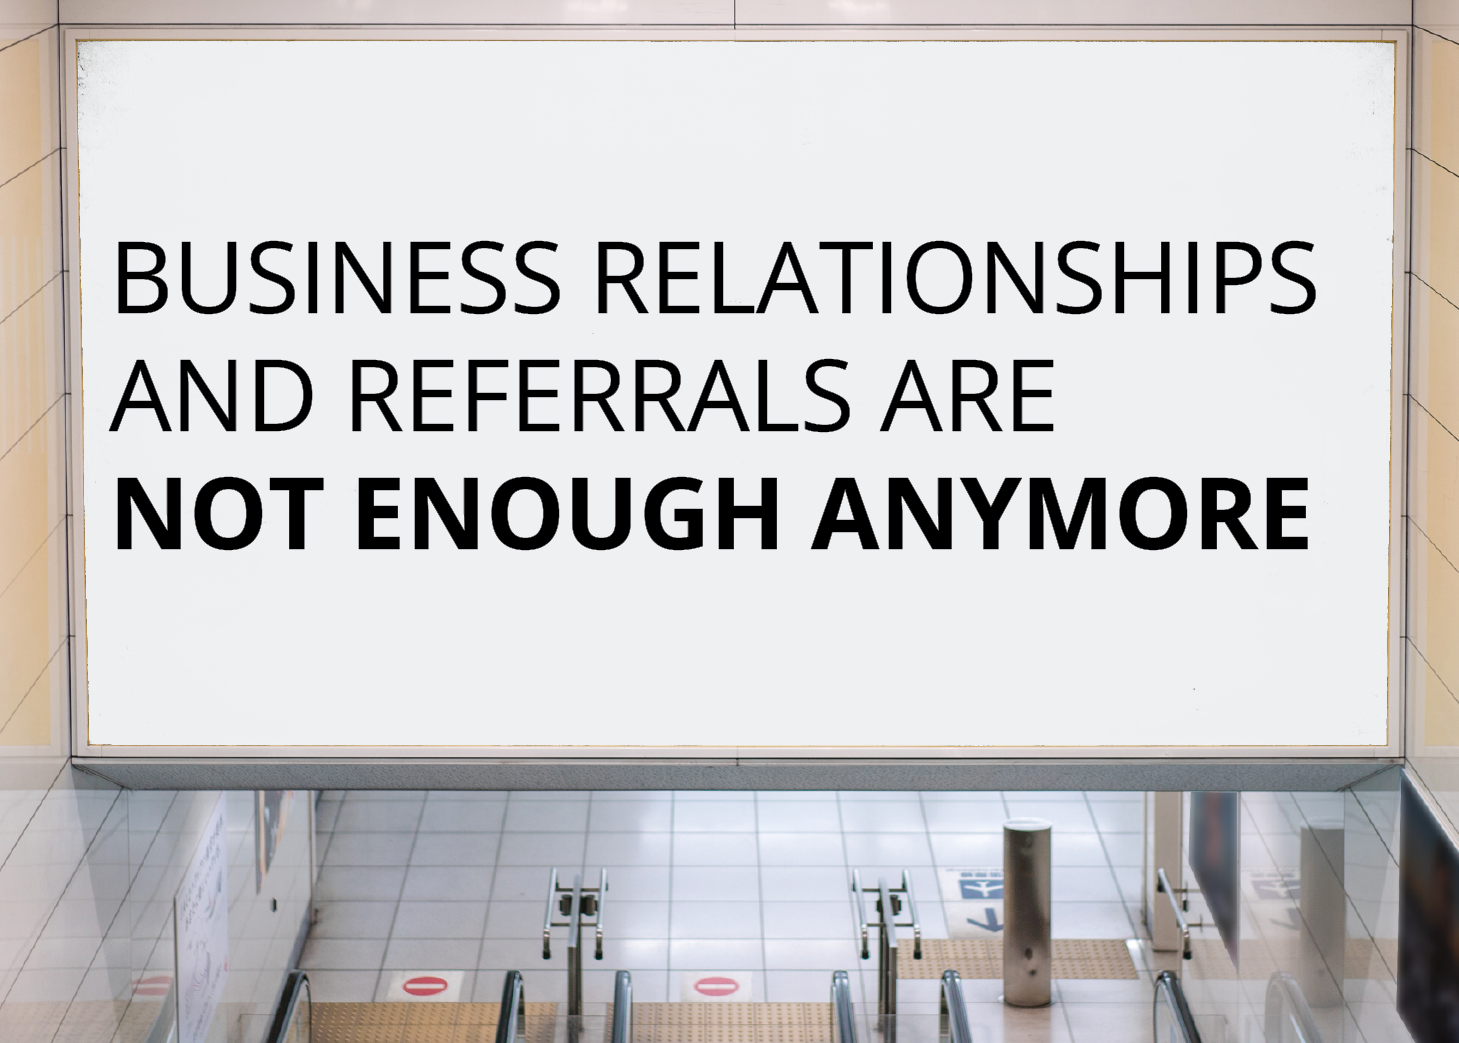 You've grown through business relationships and referrals, but they're just not enough anymore.